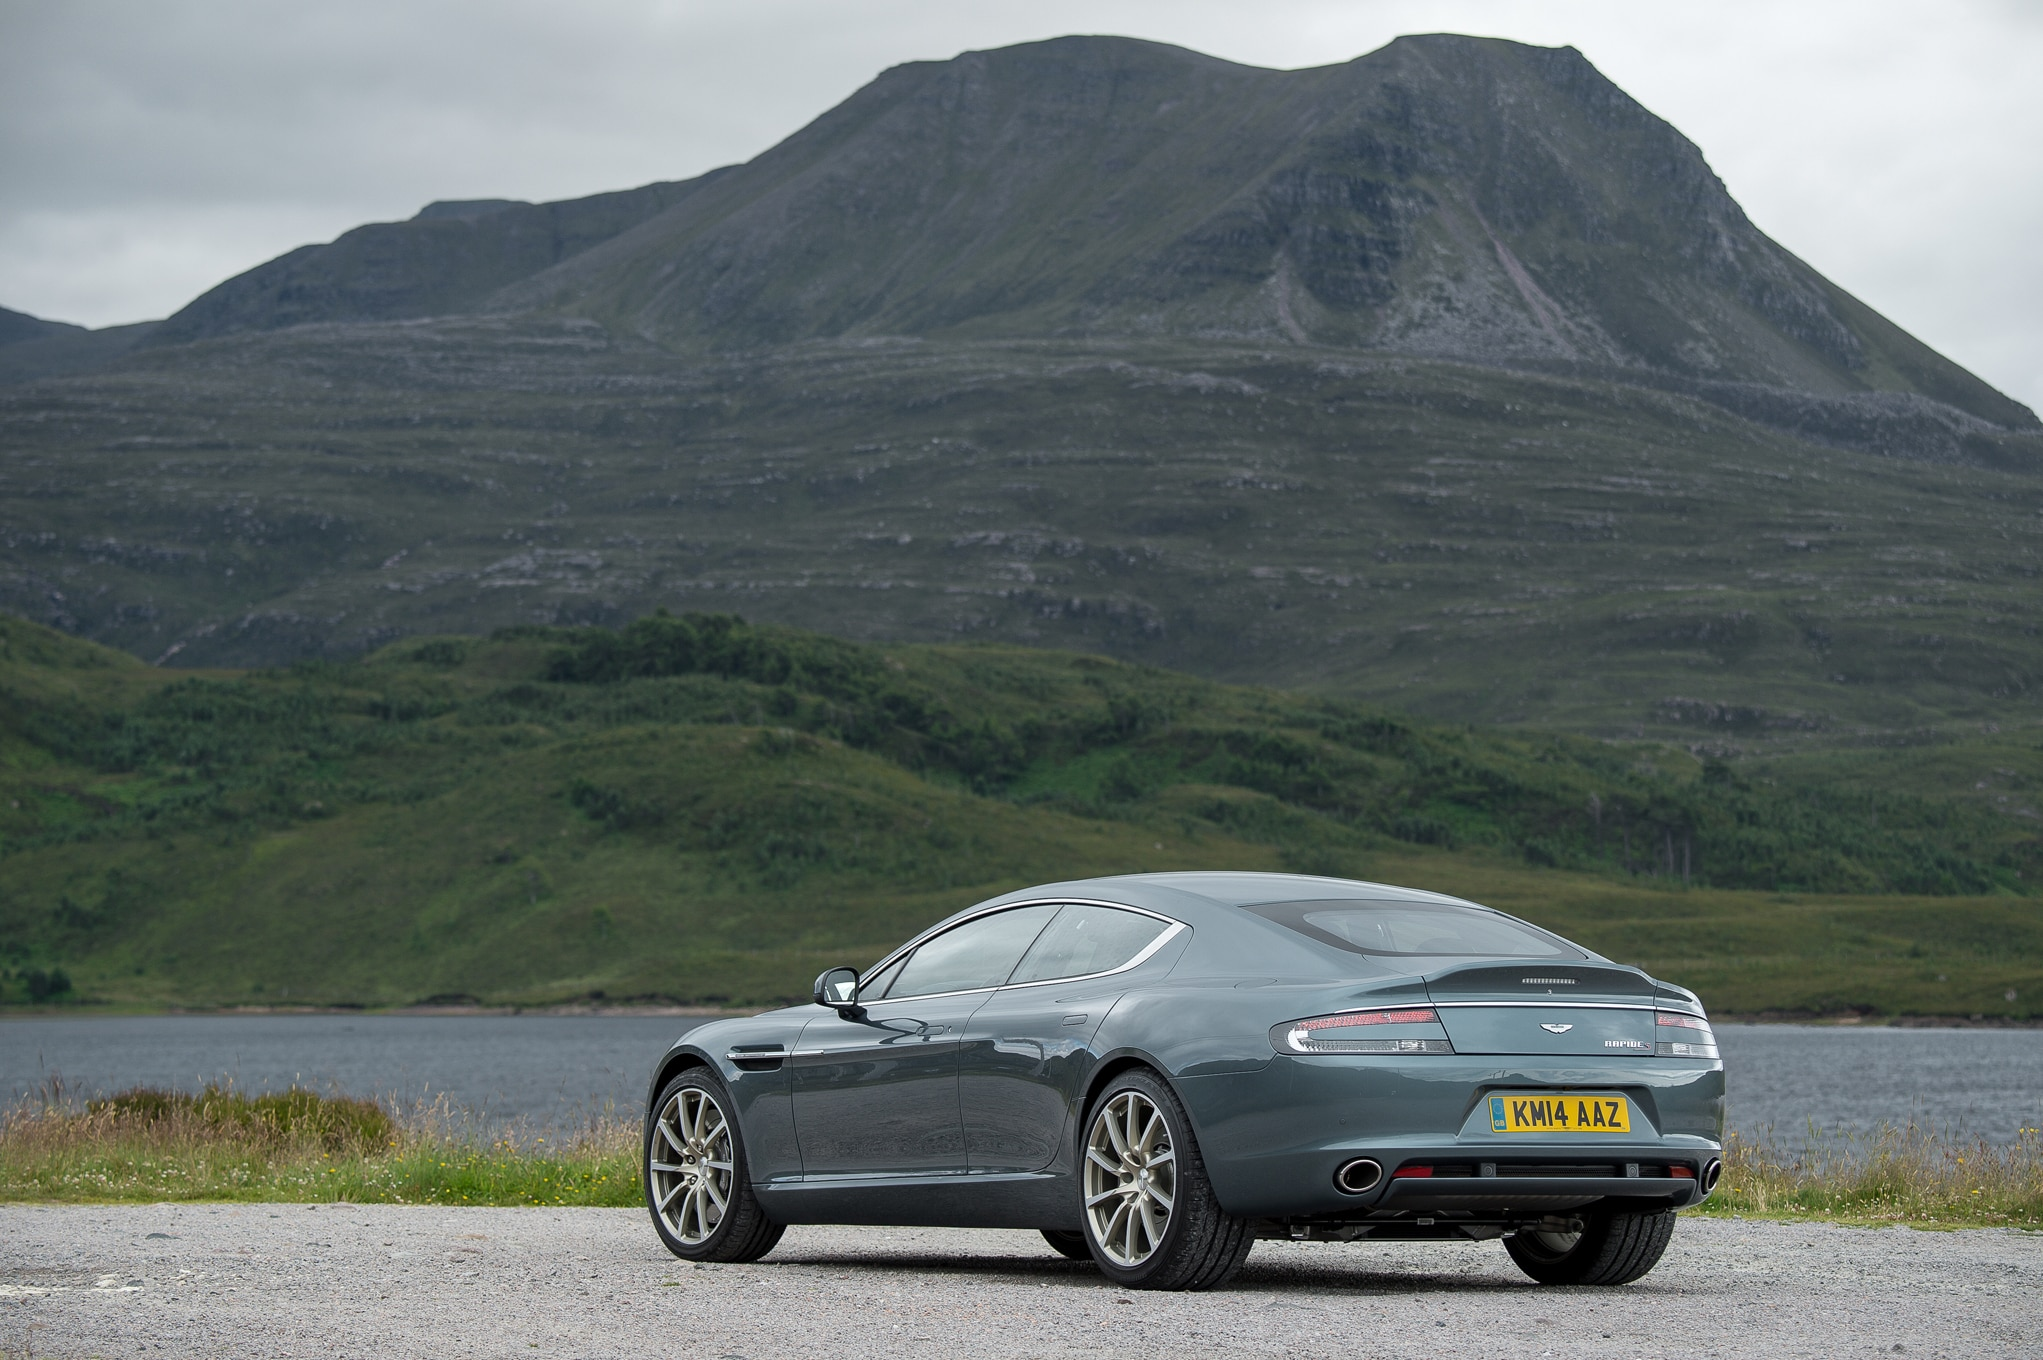 Aston Martin Vanquish Rapide S Review - Rapide aston martin